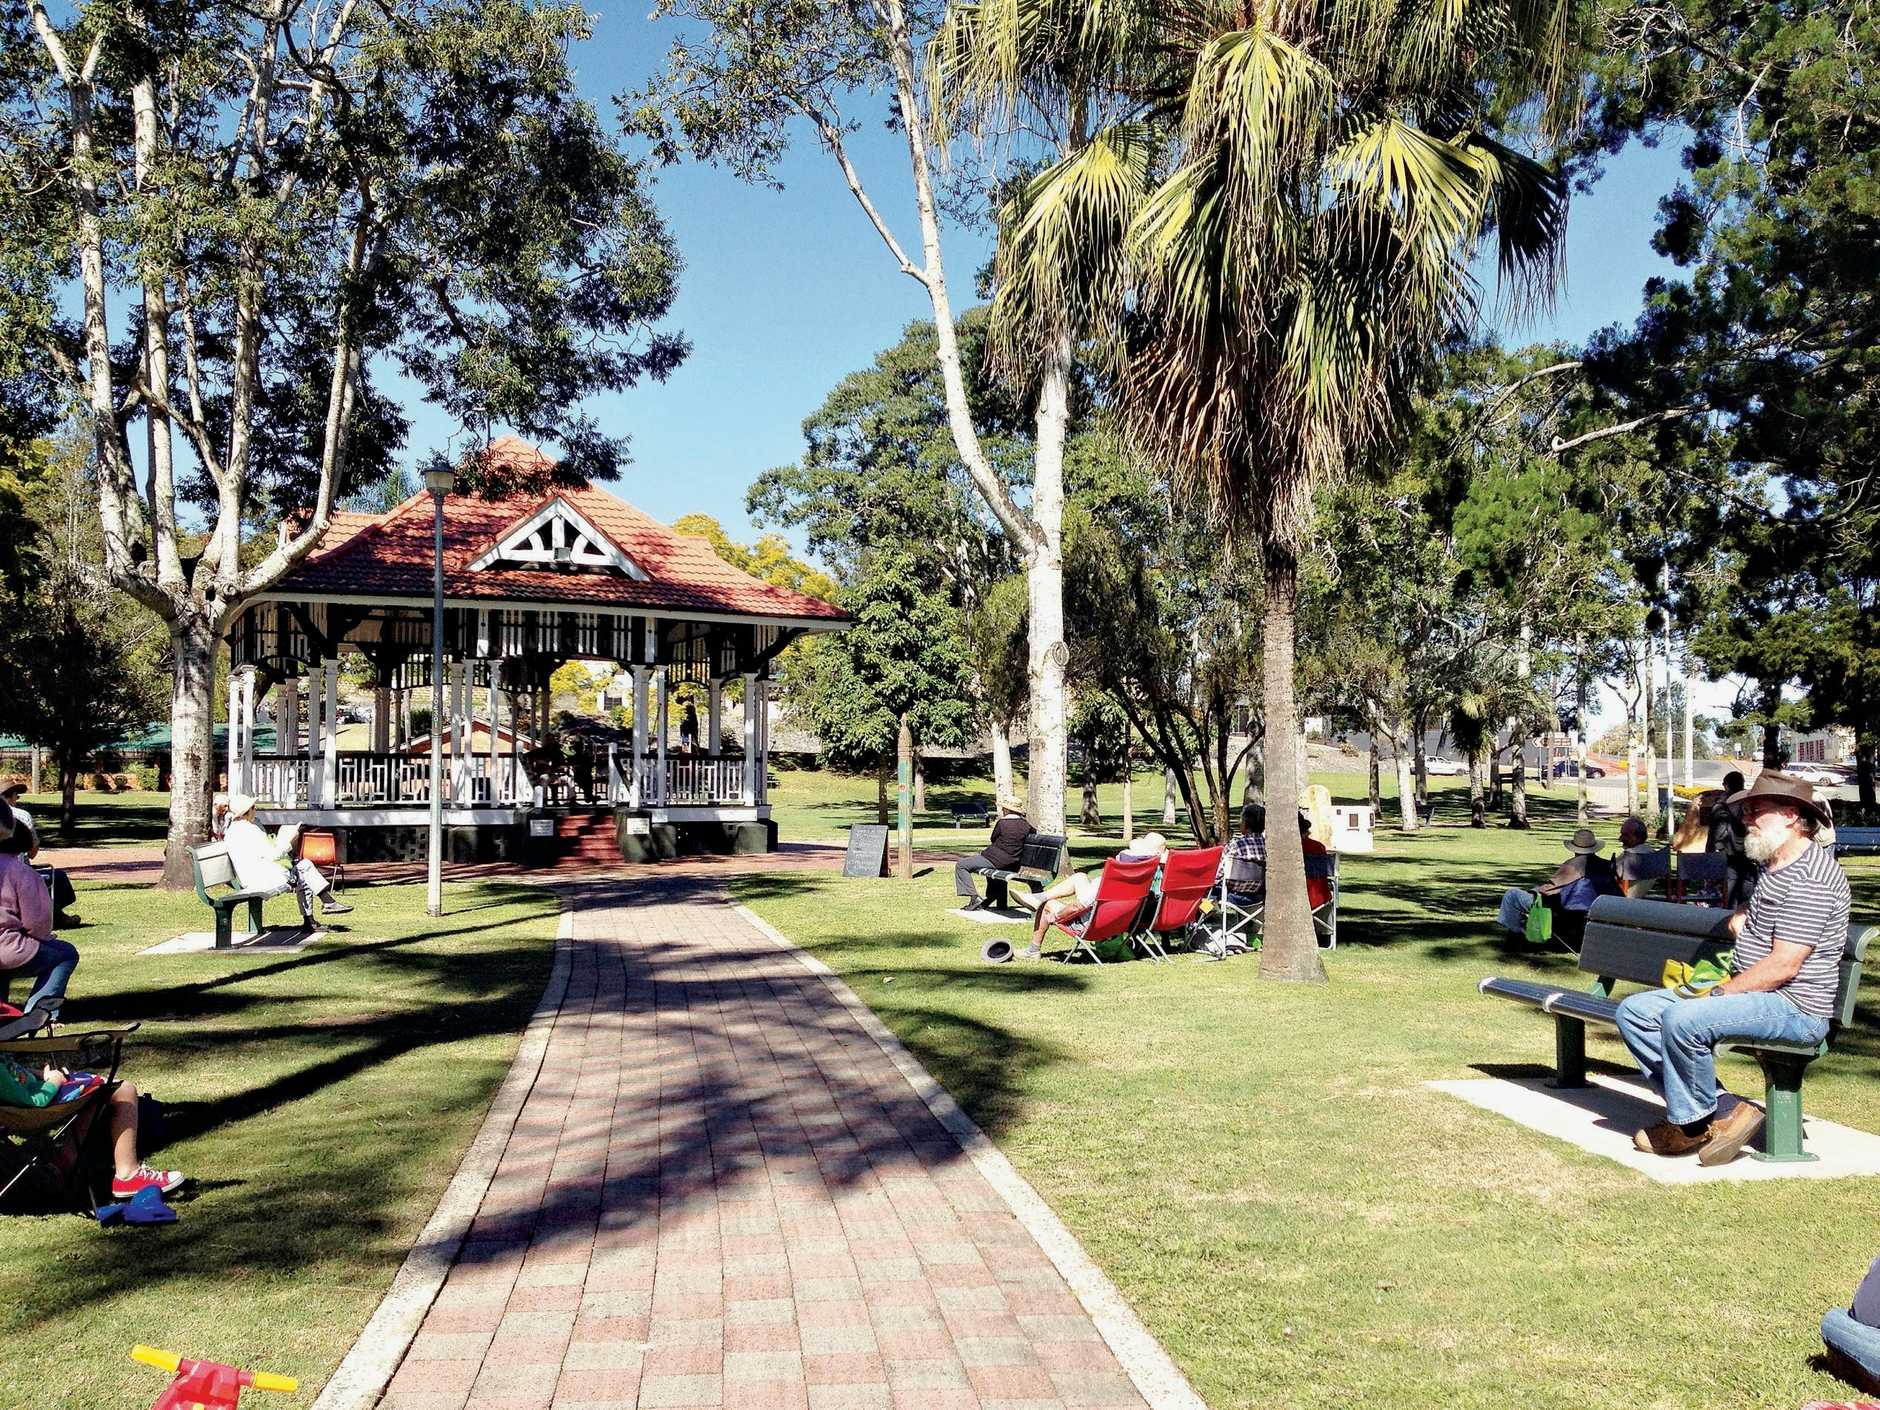 PARKED HERE FOR YEARS: The council is calling for feedback on the  conservation and management of the city's heritage listed Memorial Park.